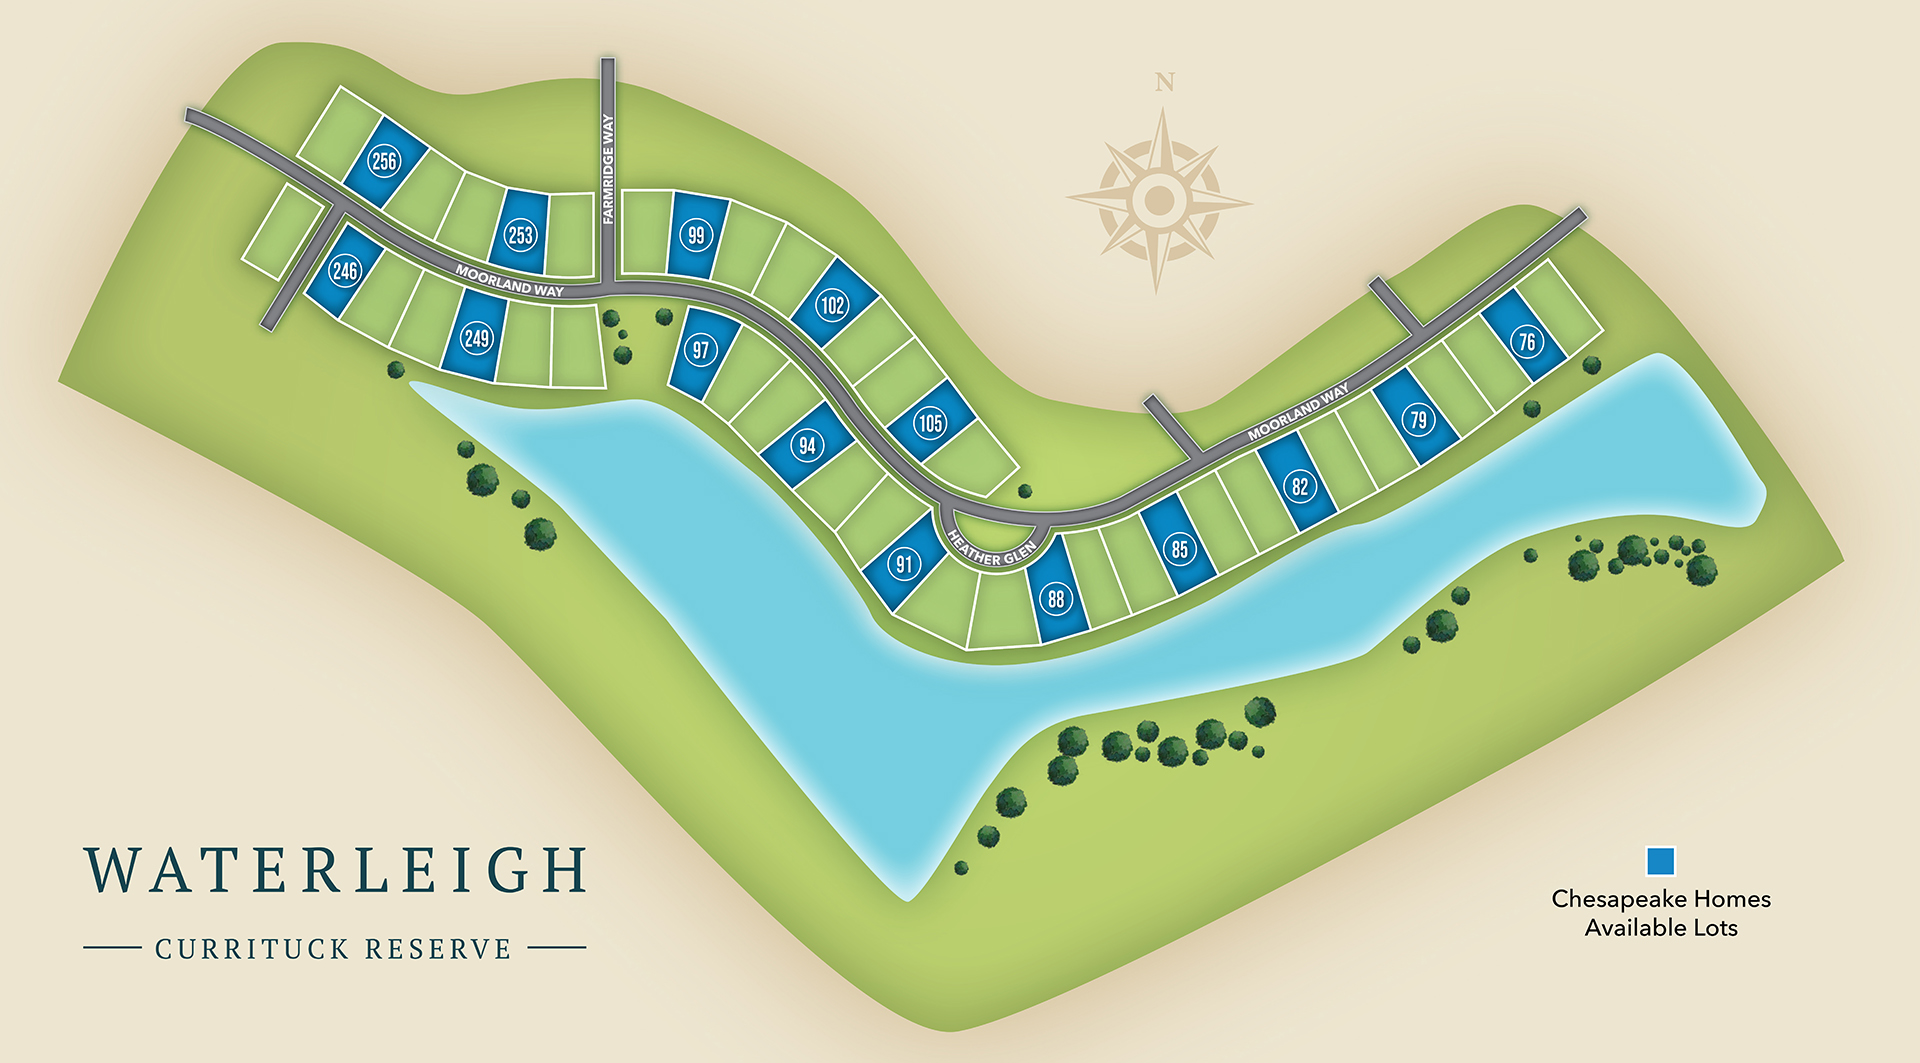 Moyock, NC Waterleigh New Homes from Chesapeake